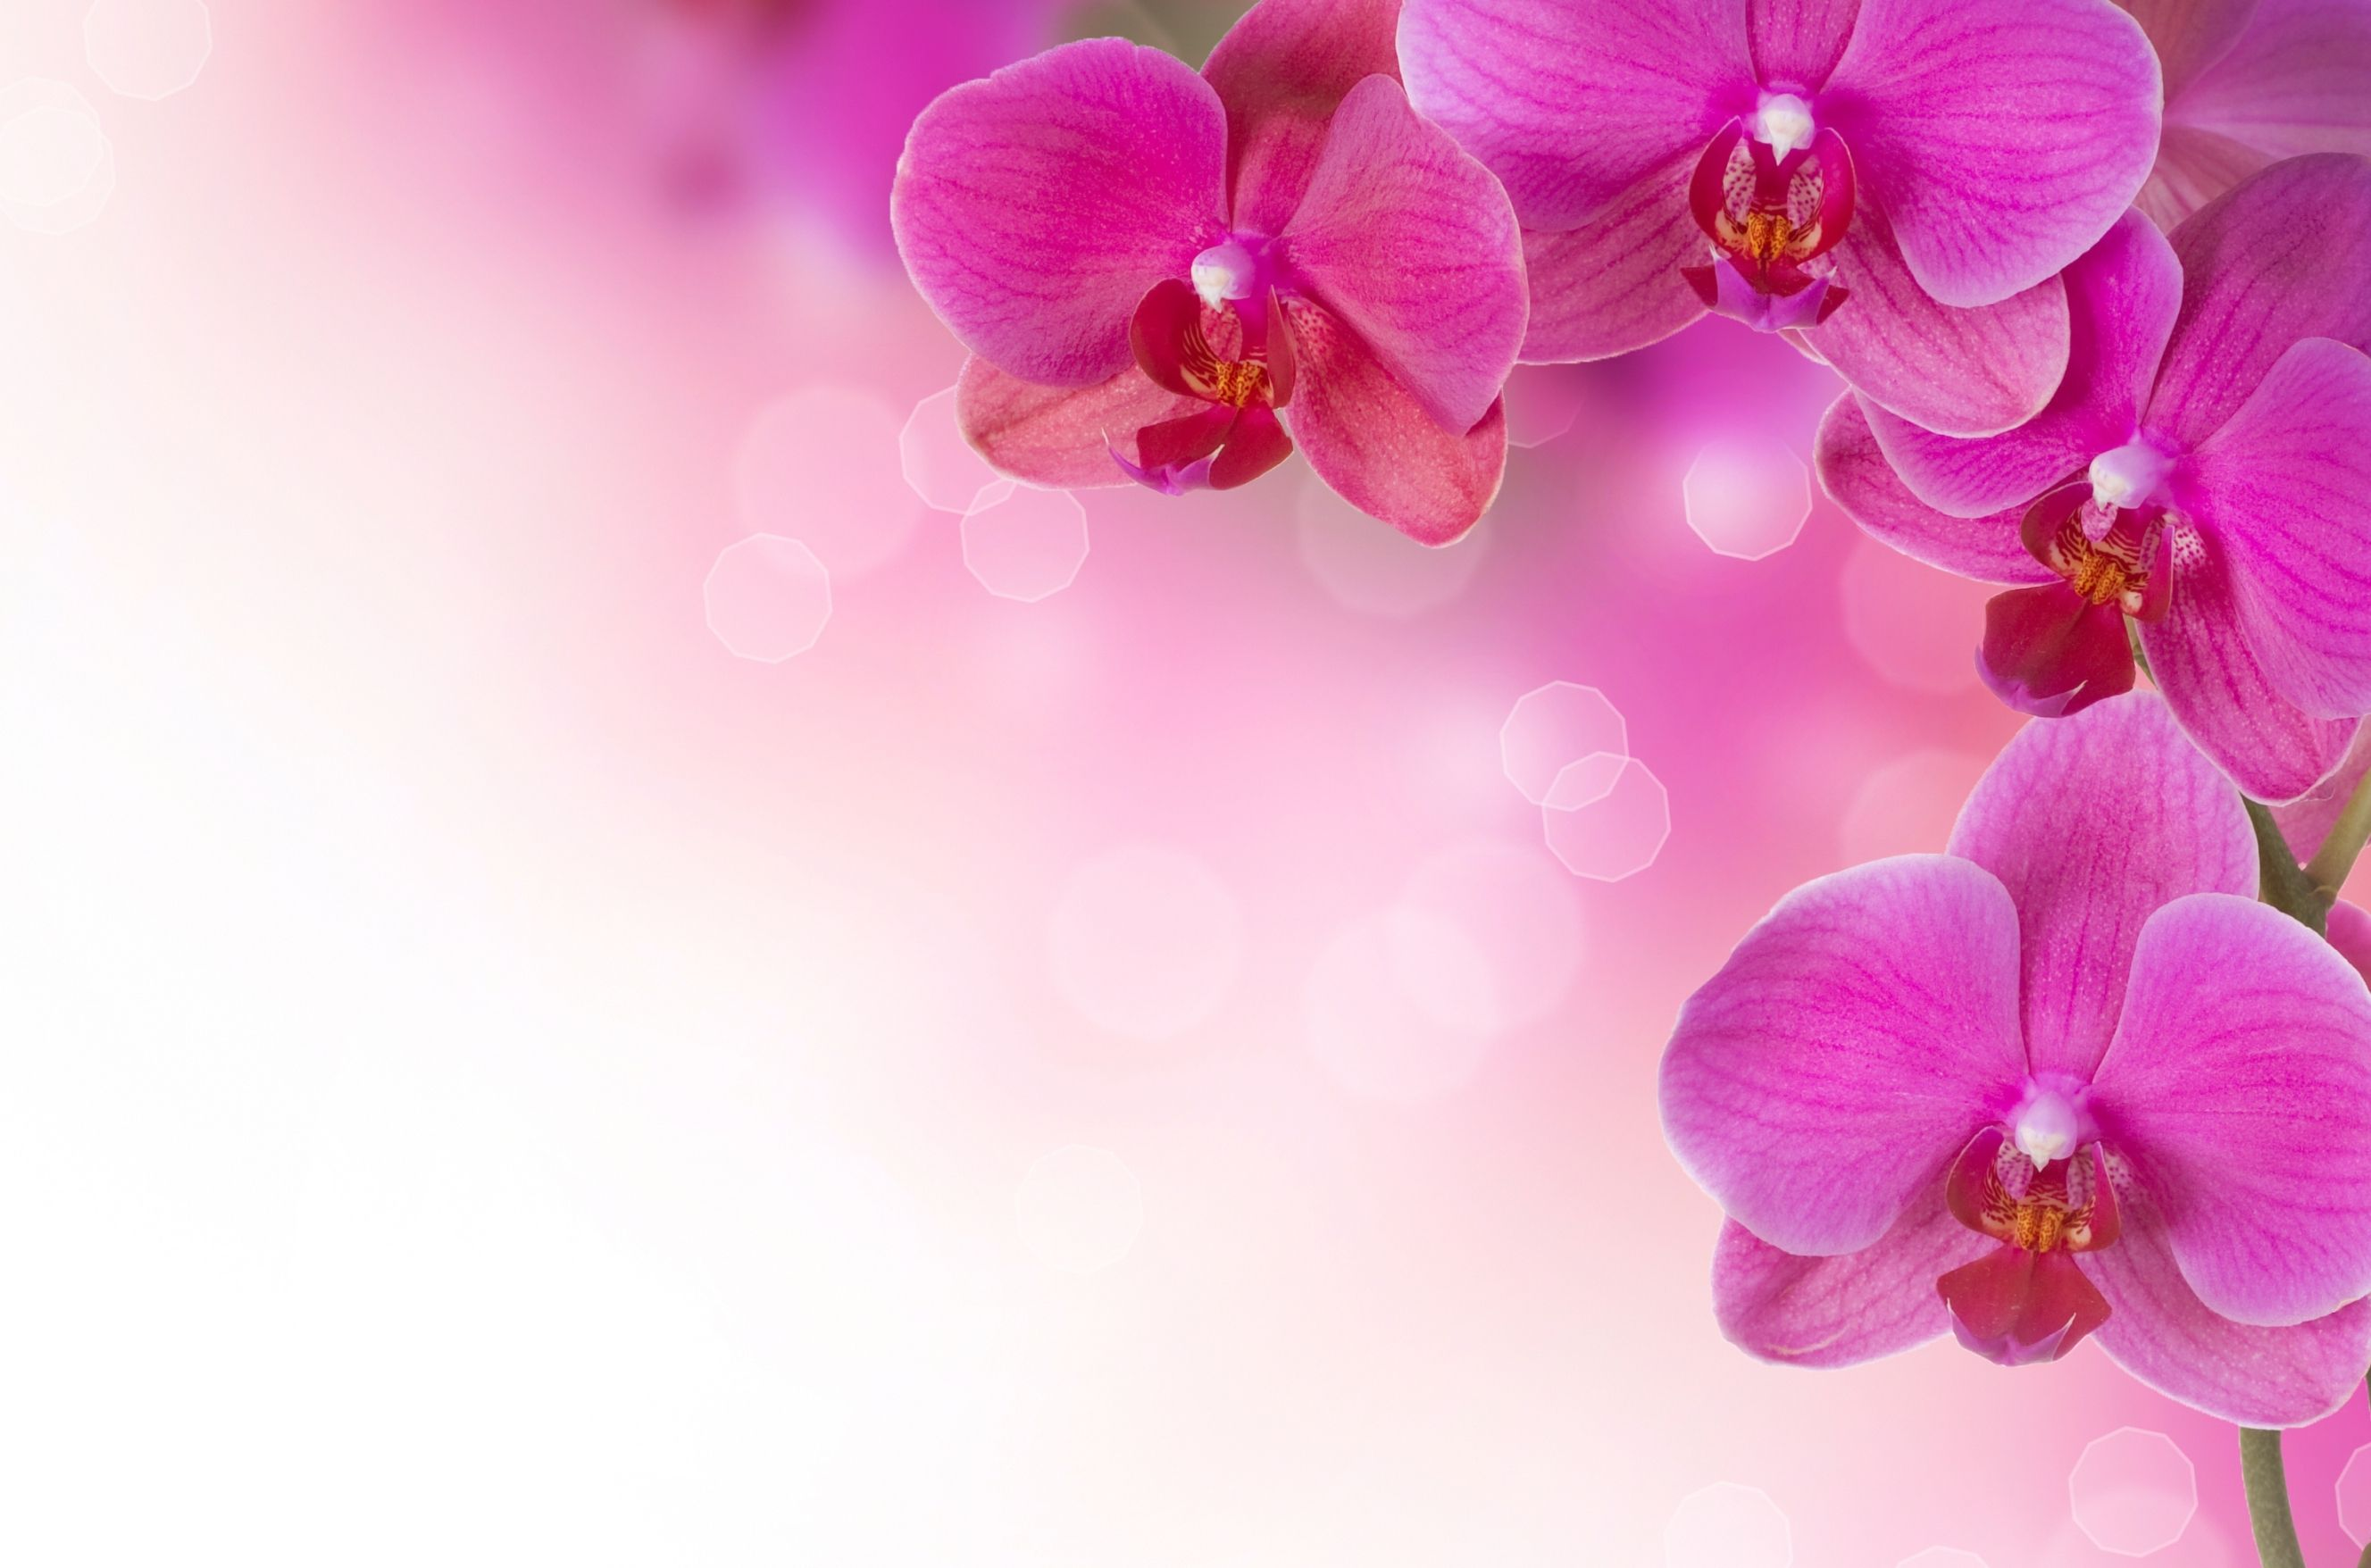 Pink Orchid Wallpaper 1080p Desktop Wallpaper Box In 2019